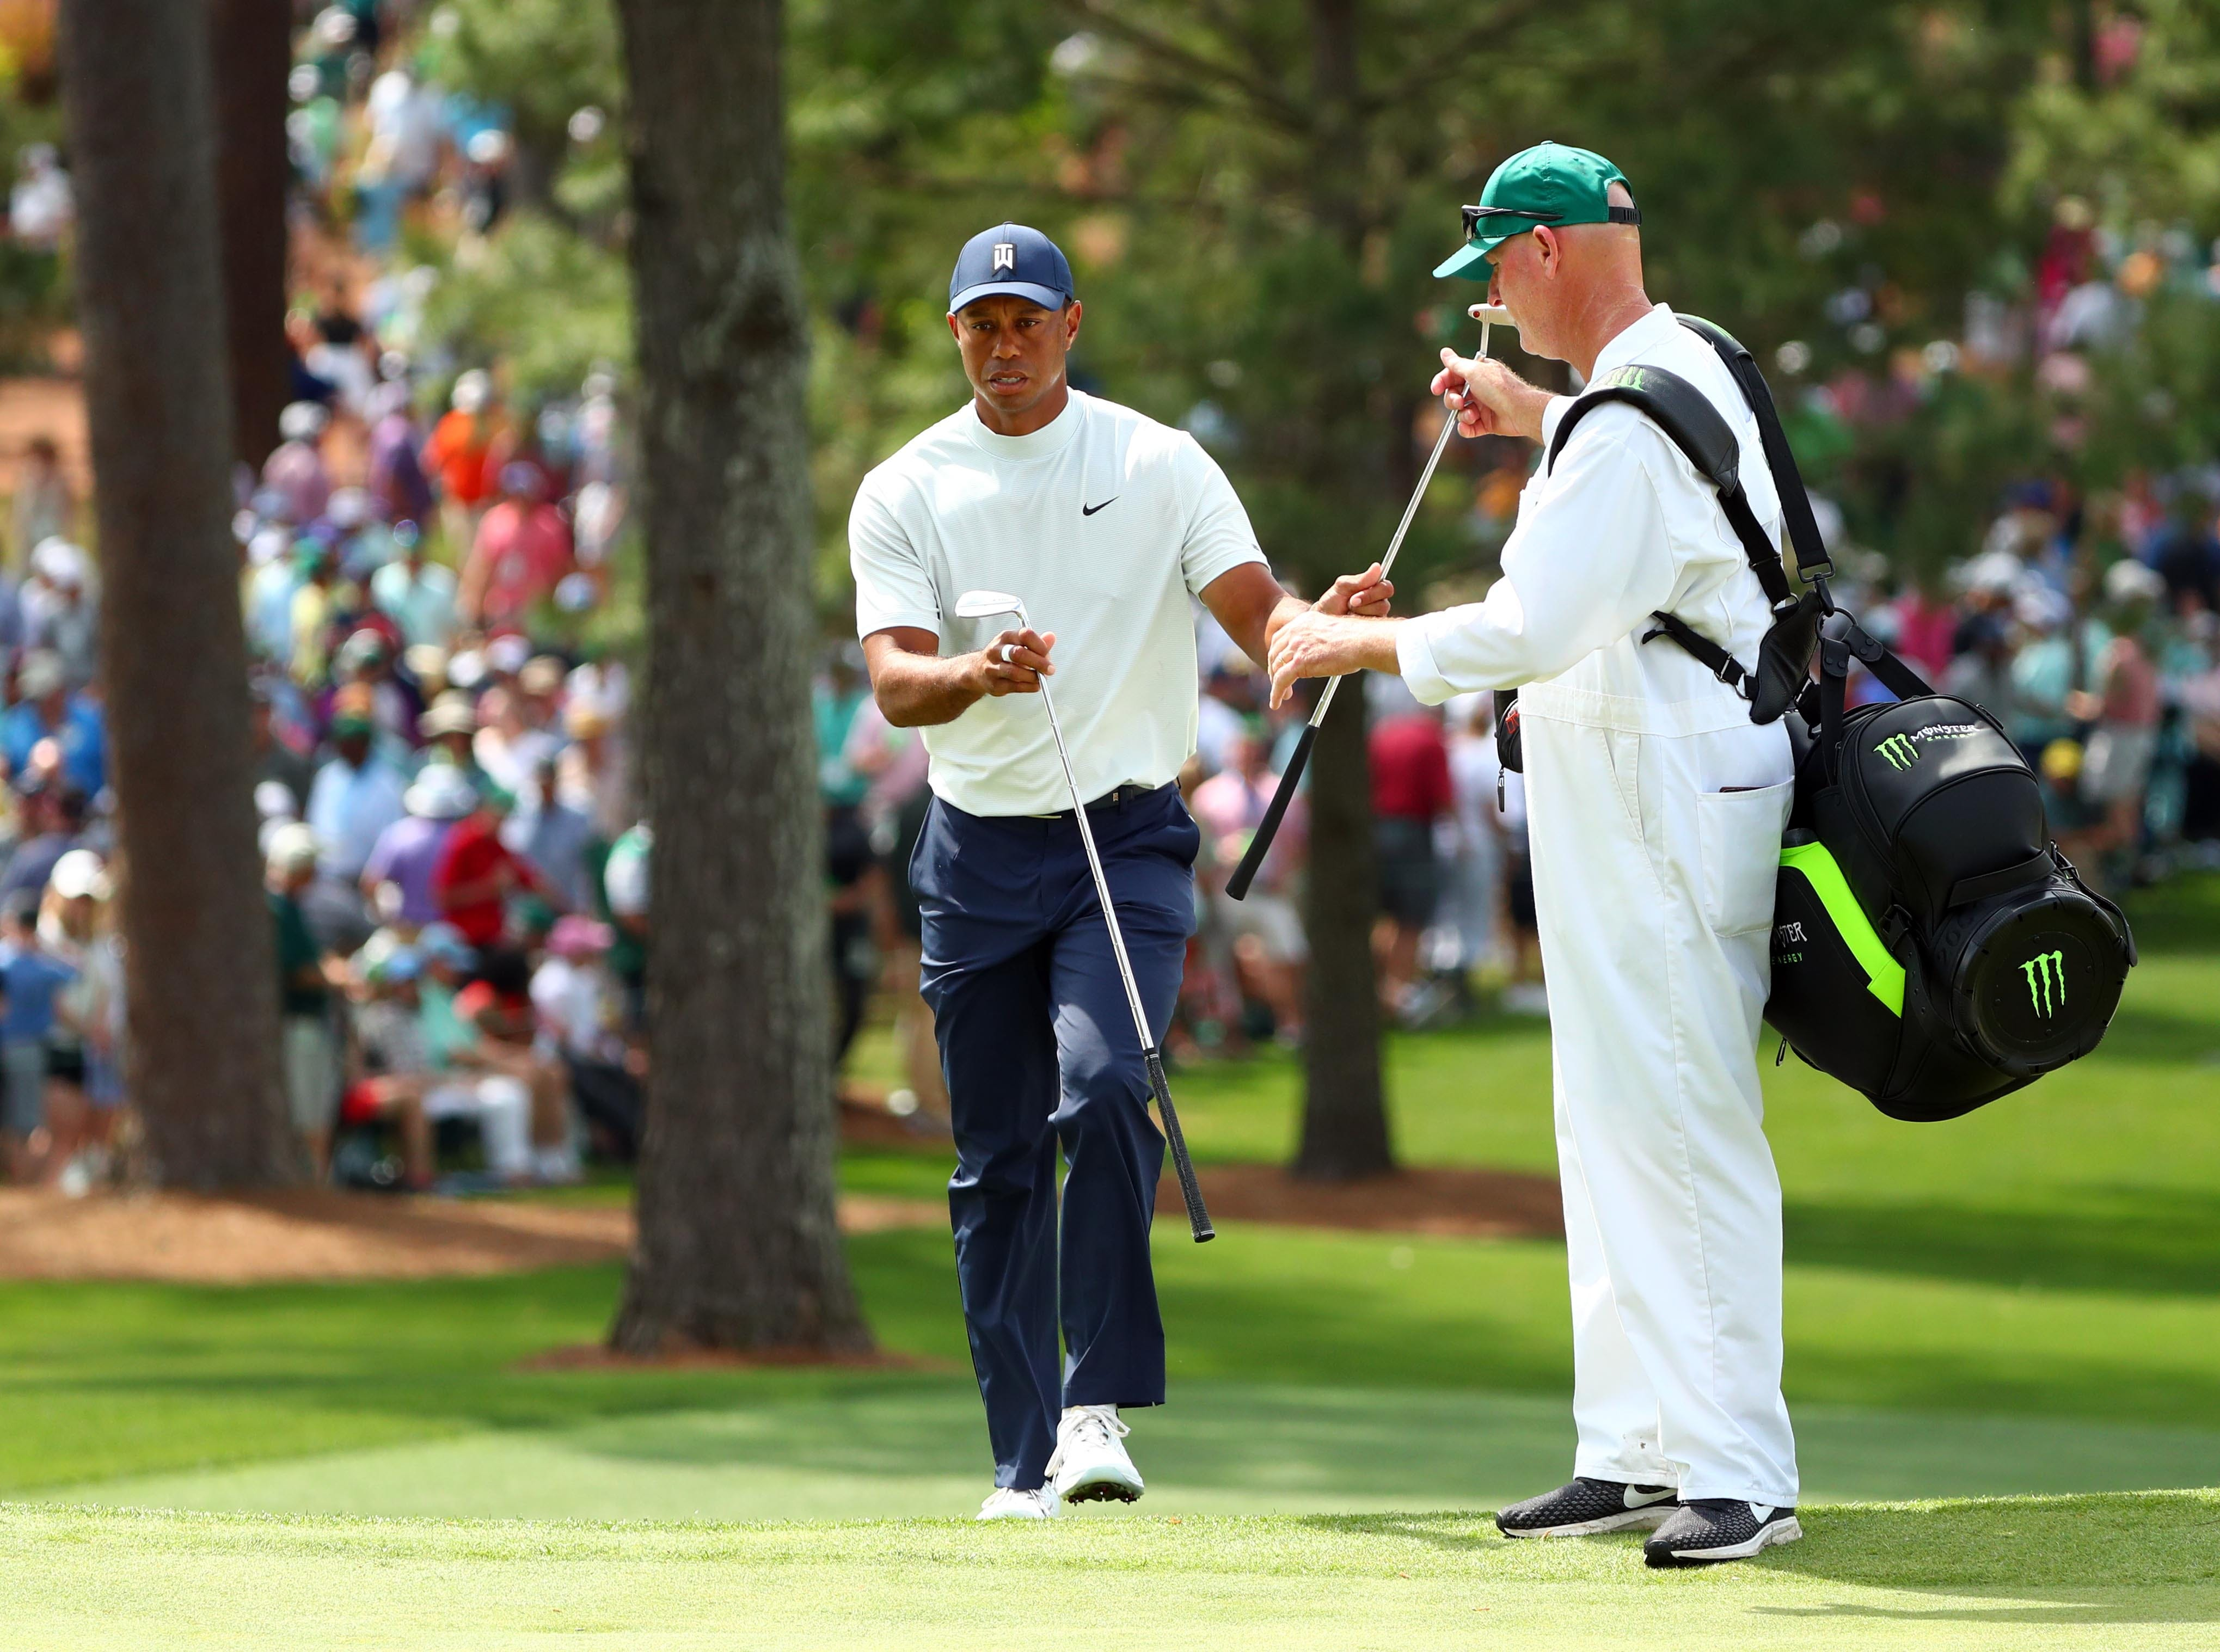 Apr 12, 2019; Augusta, GA, USA; Tiger Woods exchanges clubs with caddie Joe Lacava on the 7th green during the second round of The Masters golf tournament at Augusta National Golf Club. Mandatory Credit: Rob Schumacher-USA TODAY Sports